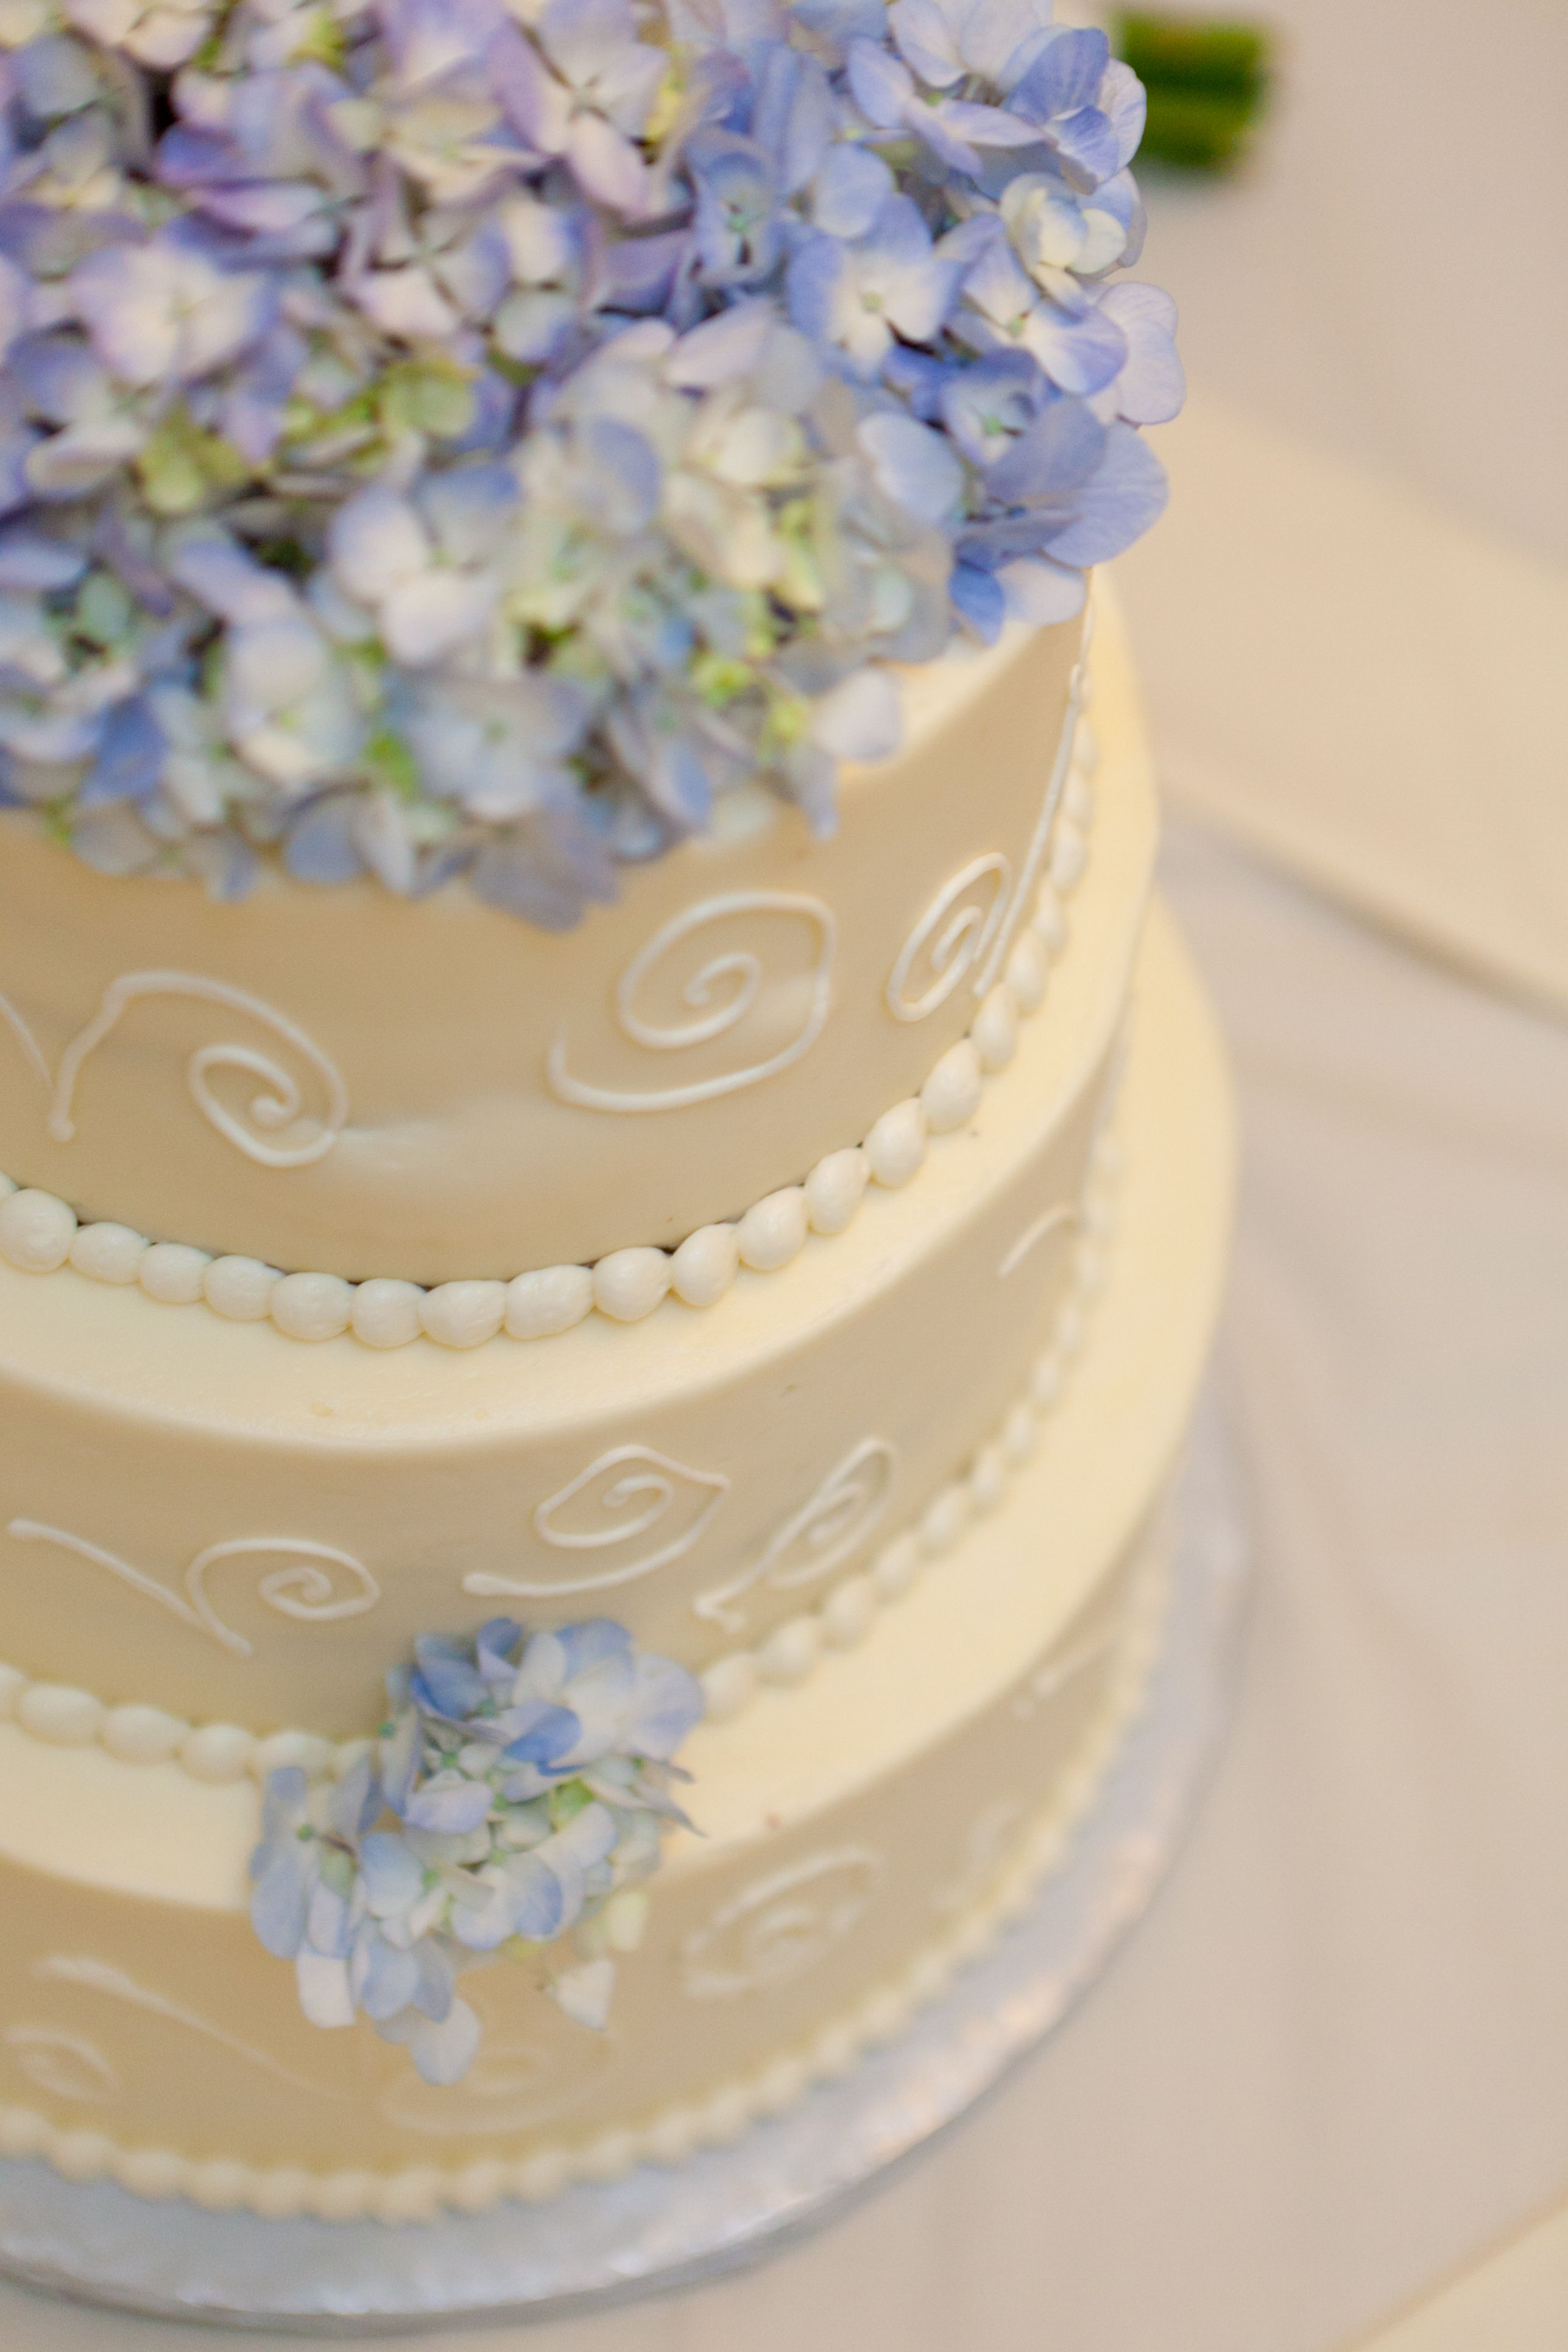 Our wedding cake was simple. Blue hydrangeas on top and